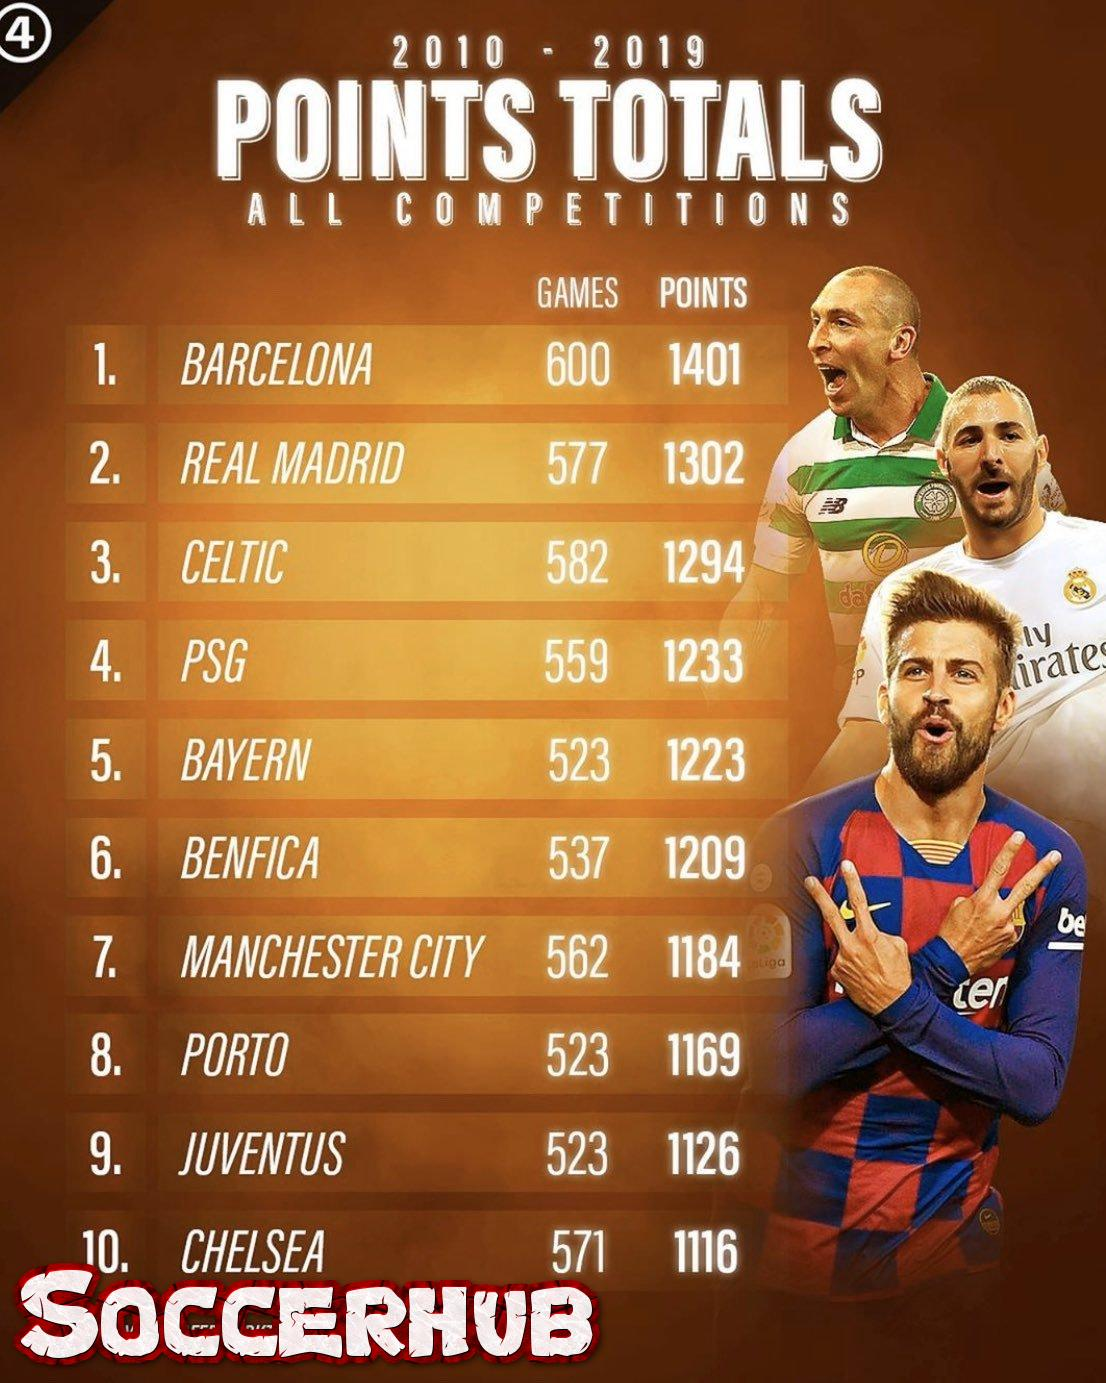 Check out the ten teams with most points last decade.